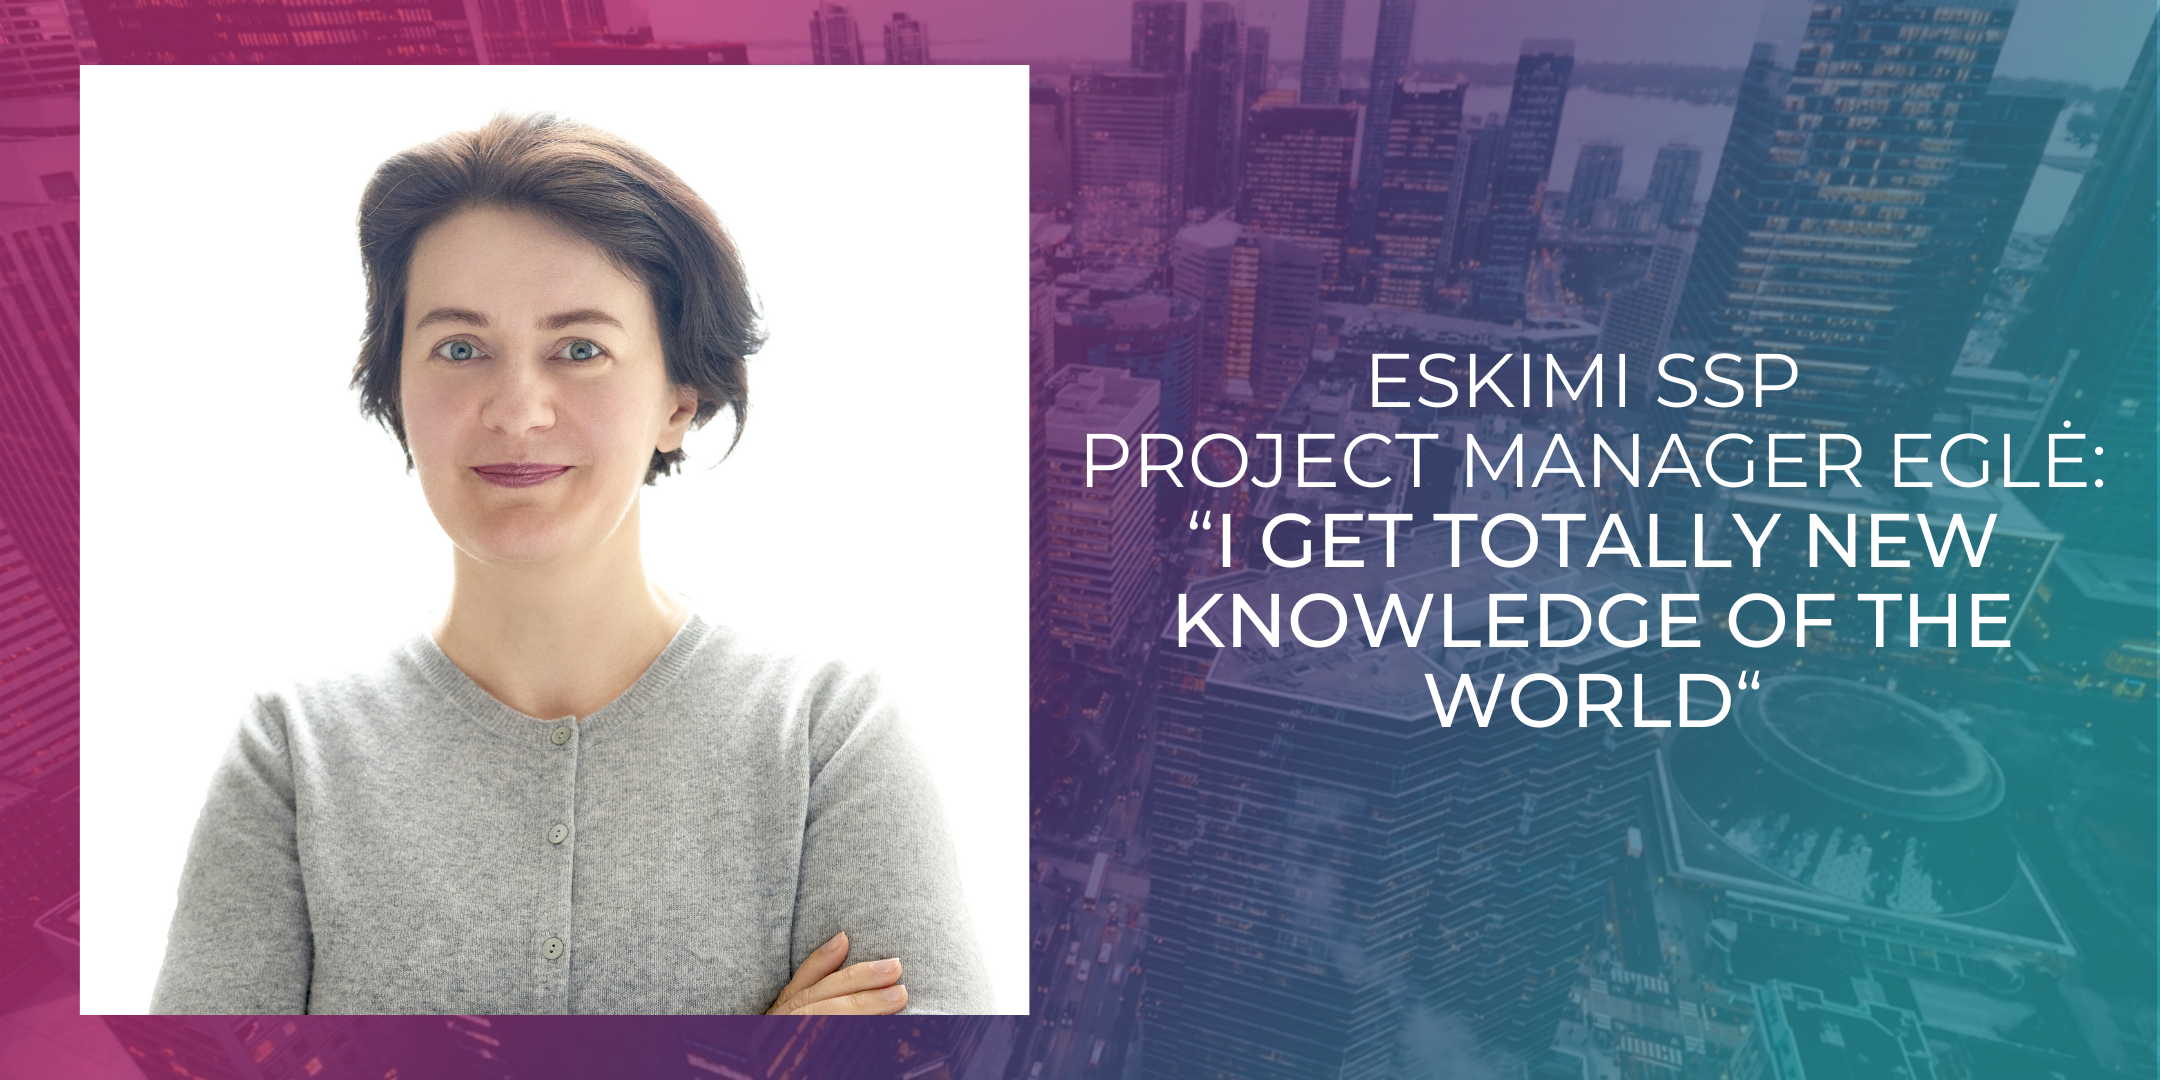 """Eskimi SSP Project Manager Eglė: """"I get totally new knowledge of the world"""""""